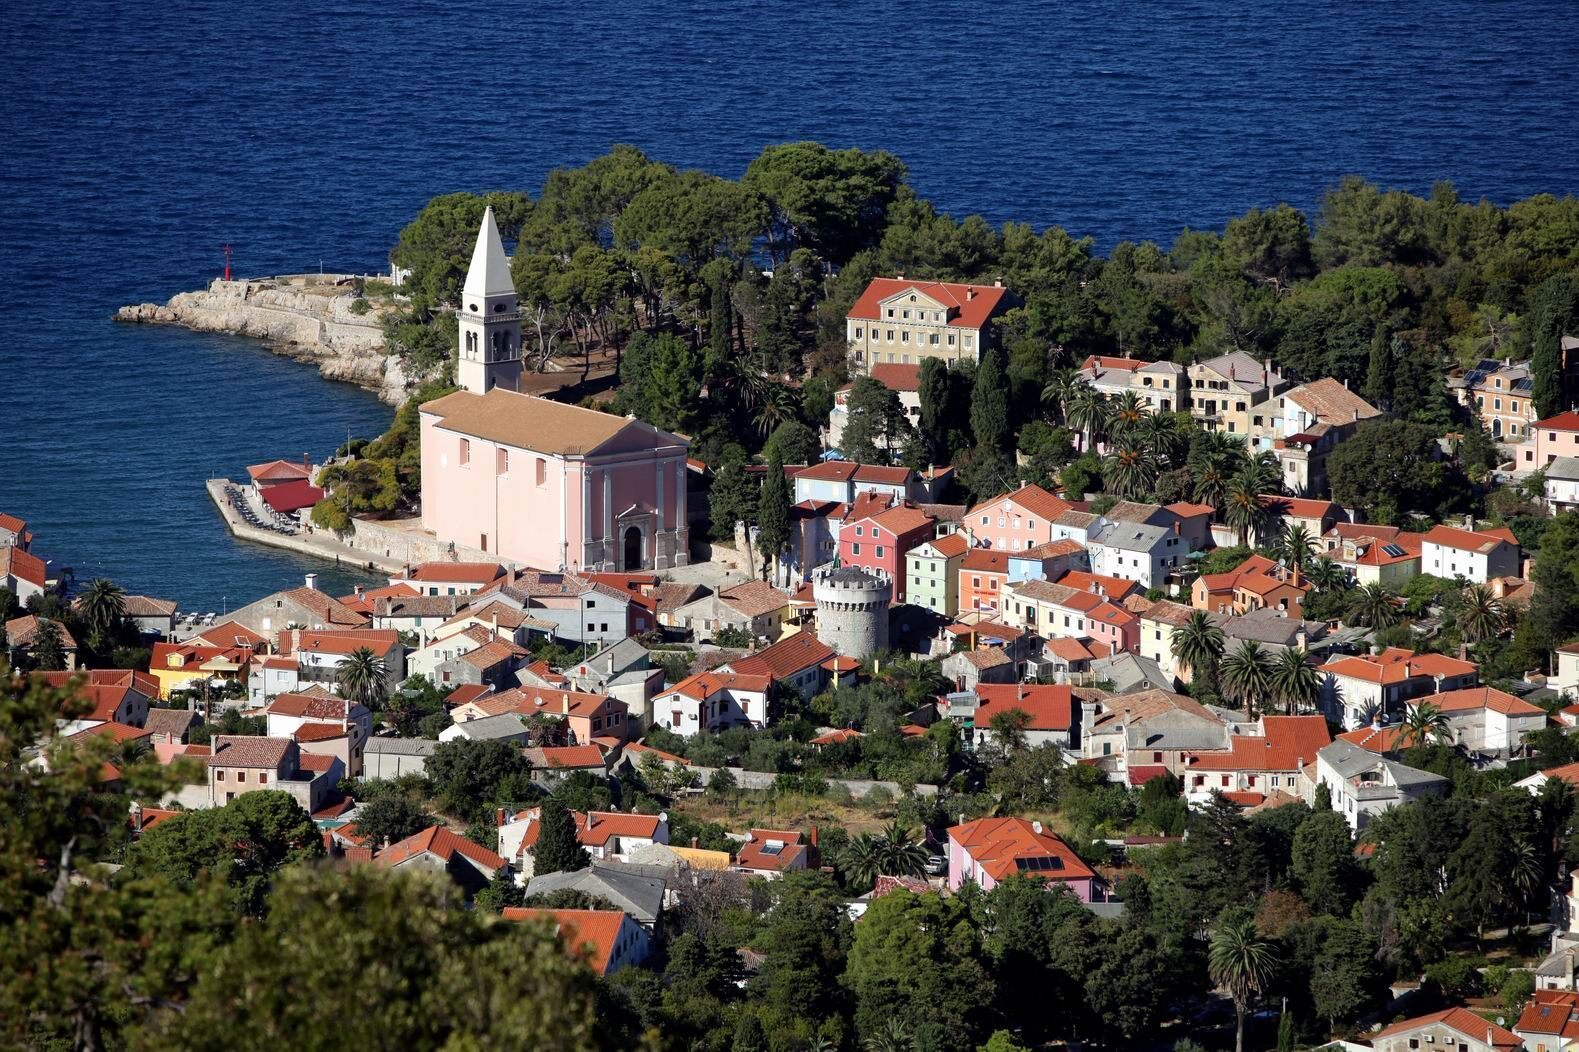 Veli Lošinj and Church of St Anthony